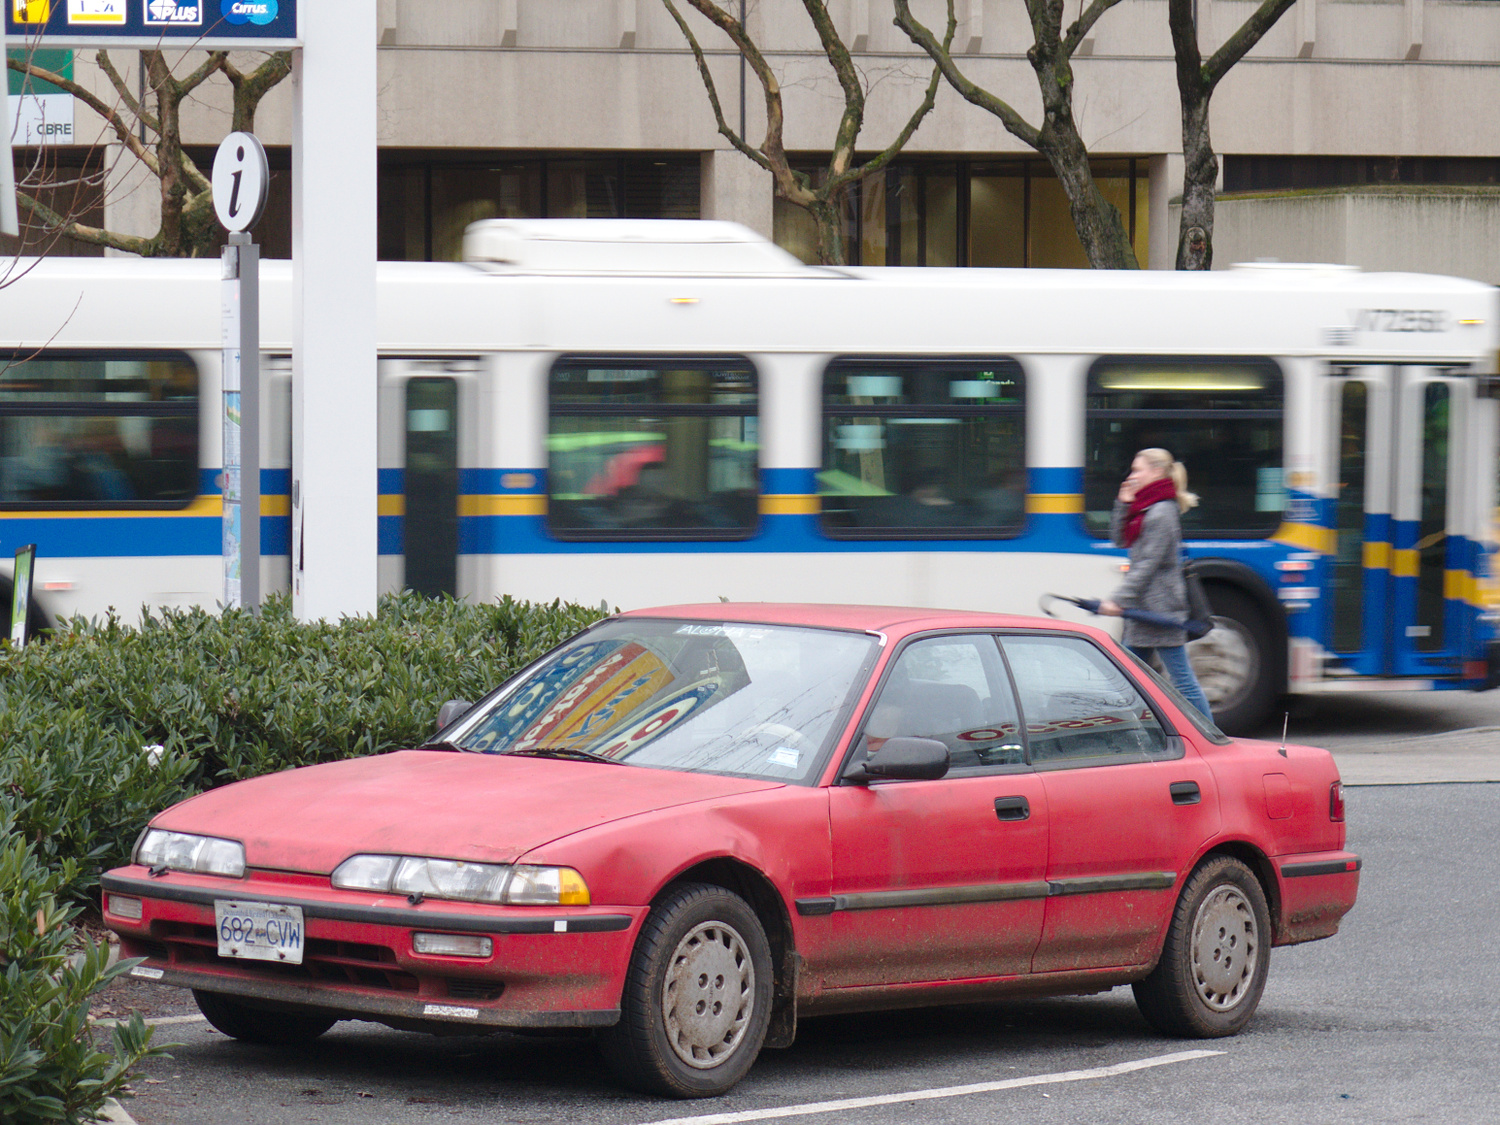 Old Parked Cars Vancouver: 1990 Acura Integra 4dr